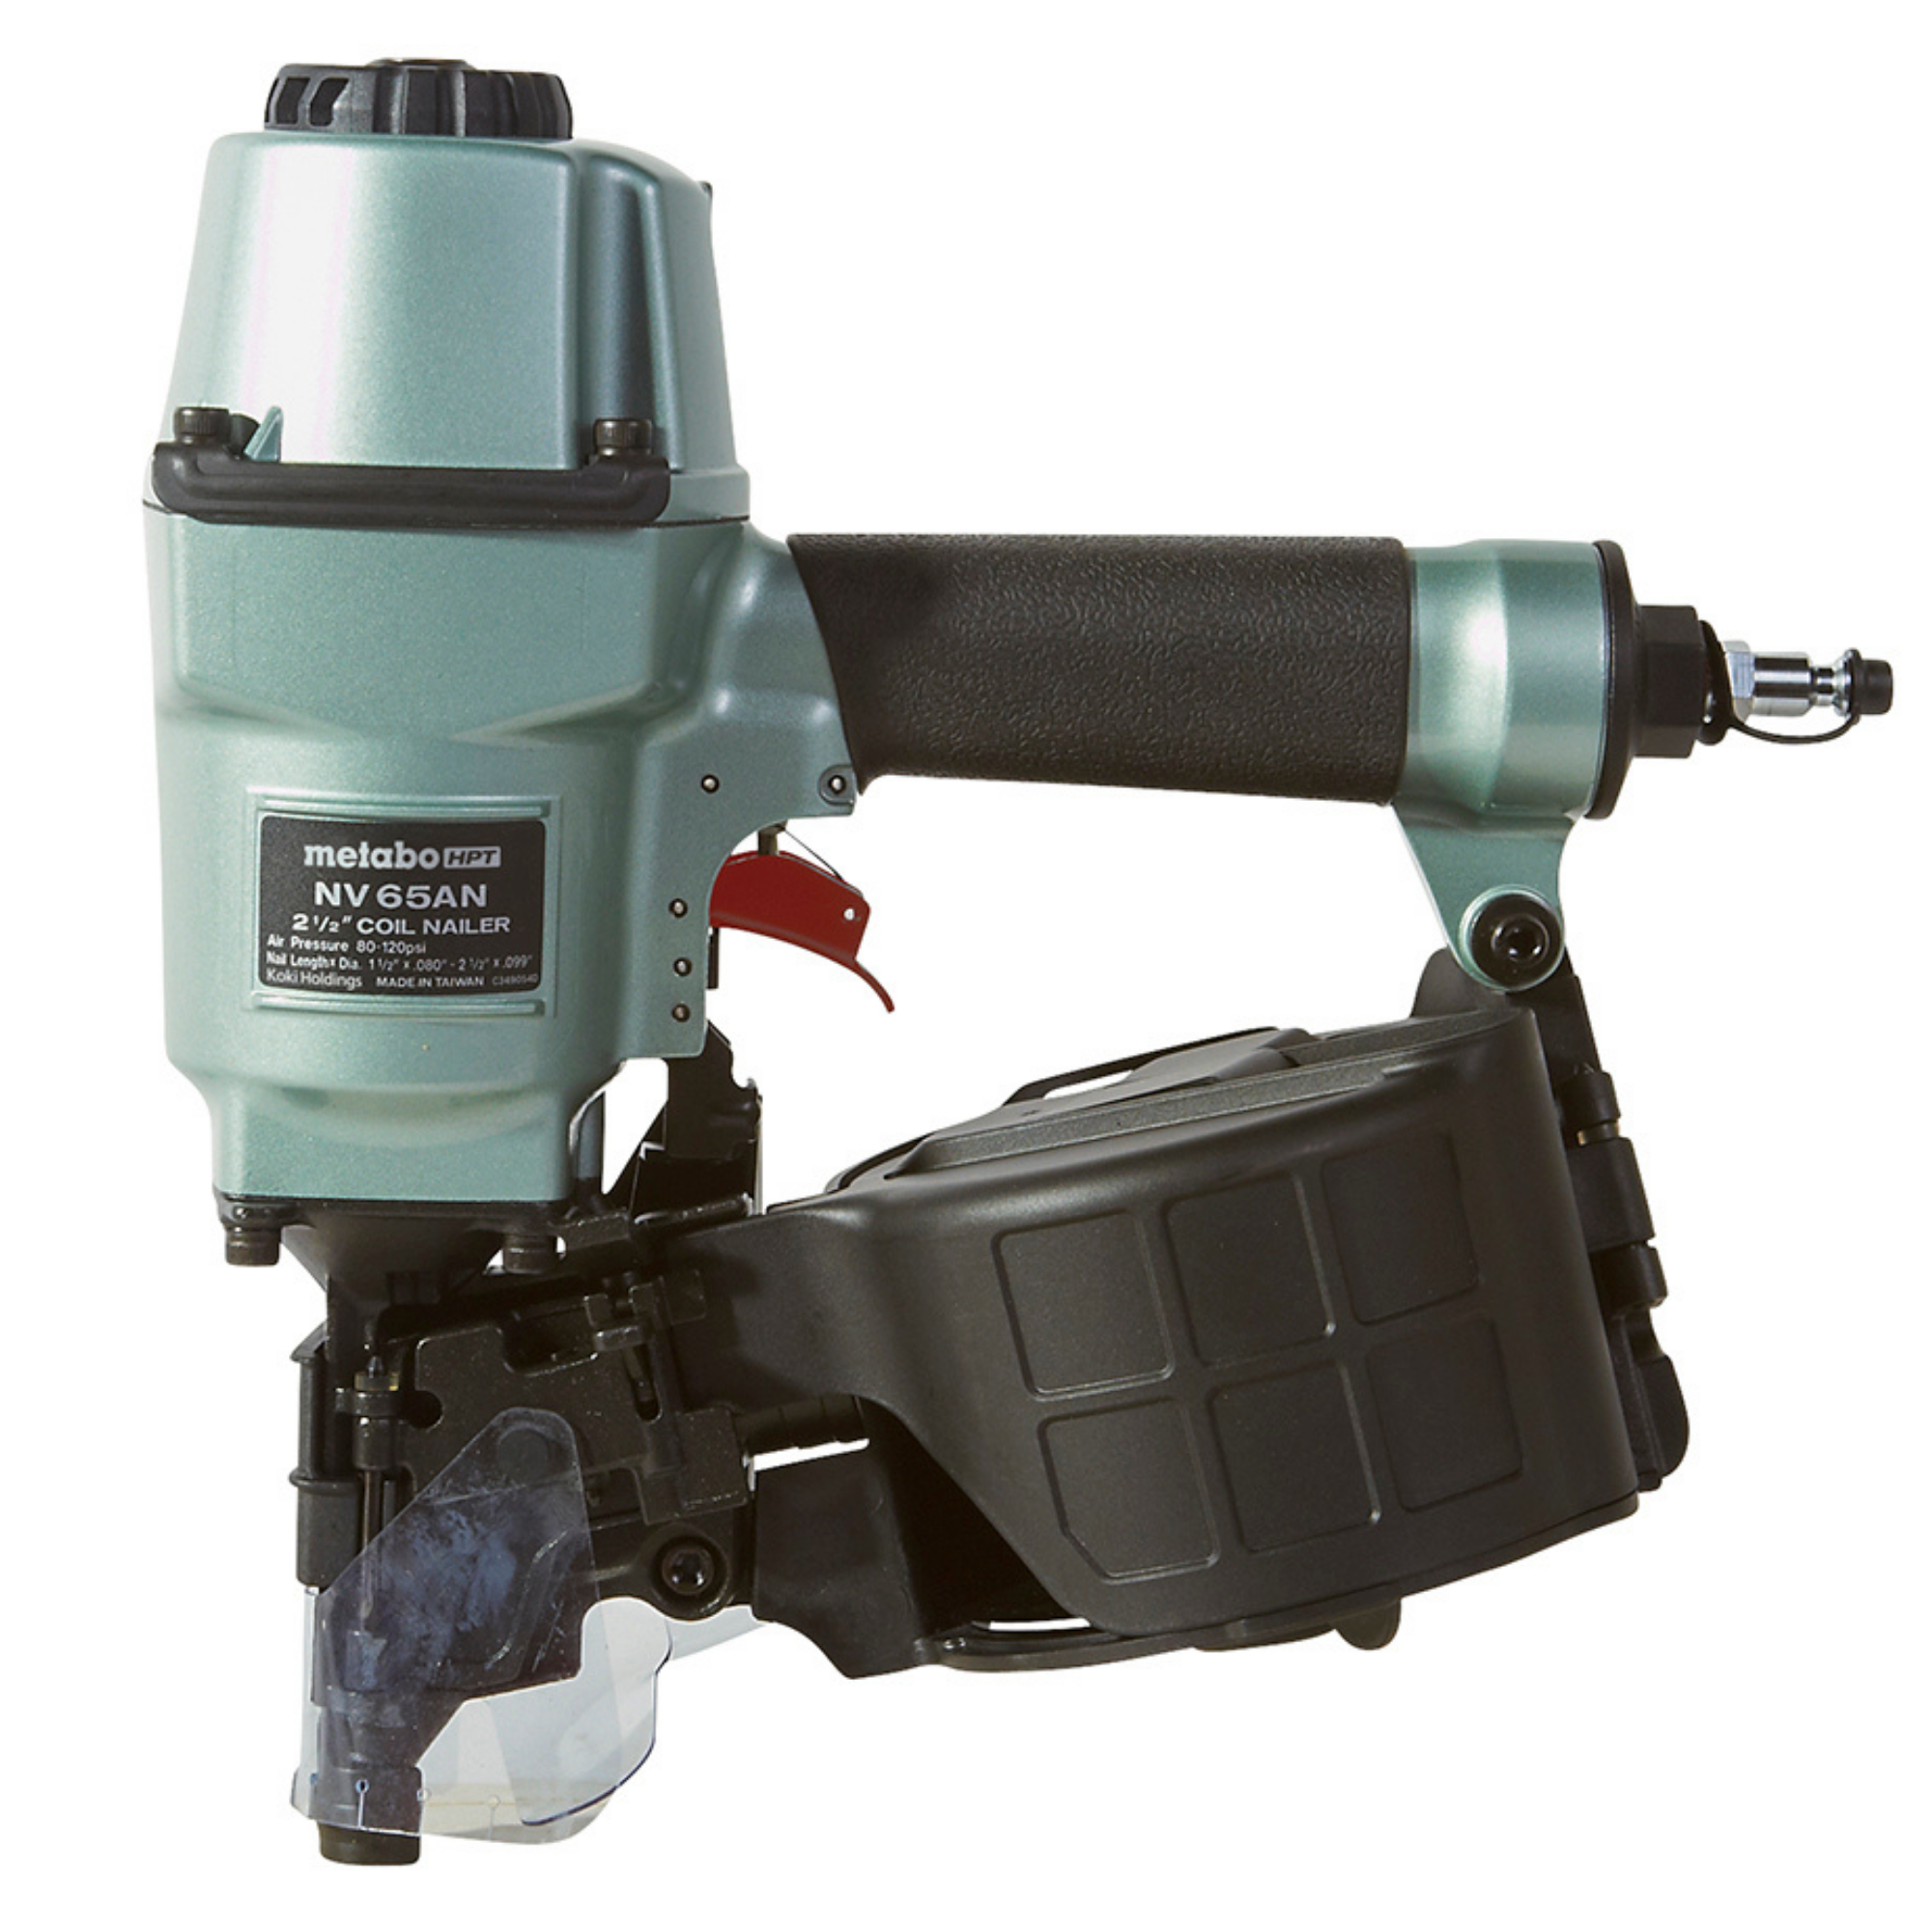 Metabo HPT Pallet Nailer Side